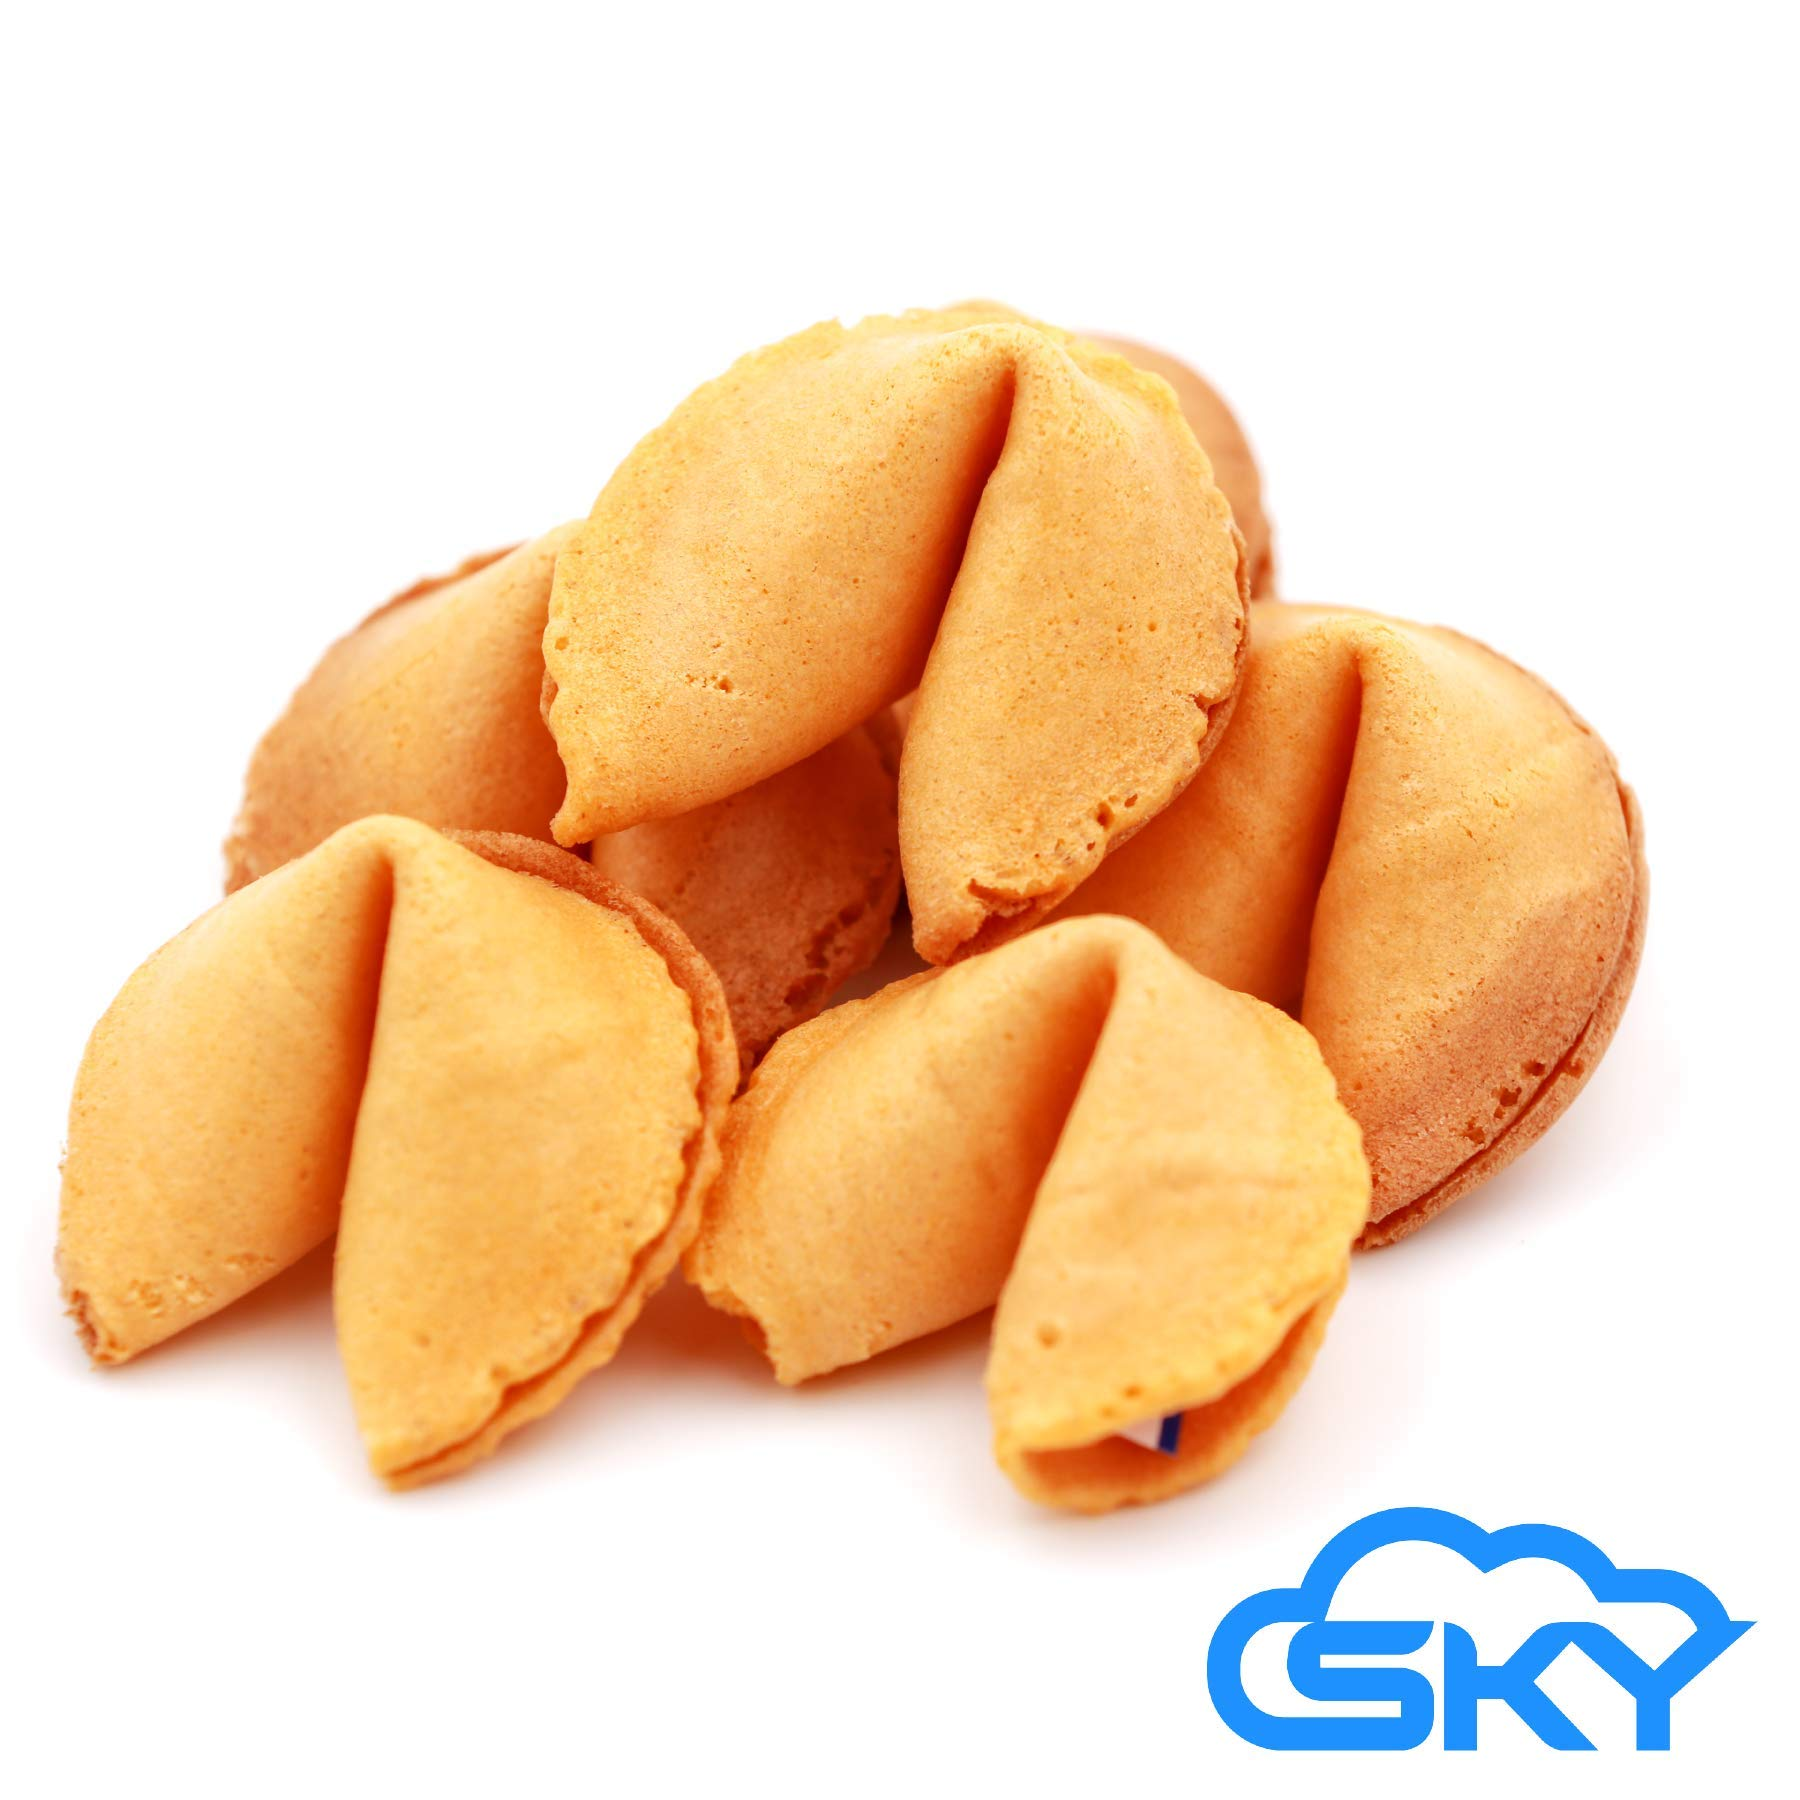 Sky Premium and Fresh Fortune Cookies Individually Wrapped, Bulk 100 Pcs, Perfect for Snacks, Lunch, Picnic, Birthdays, Graduation, Parties | Product of USA by Sky Ecommerce (Image #1)